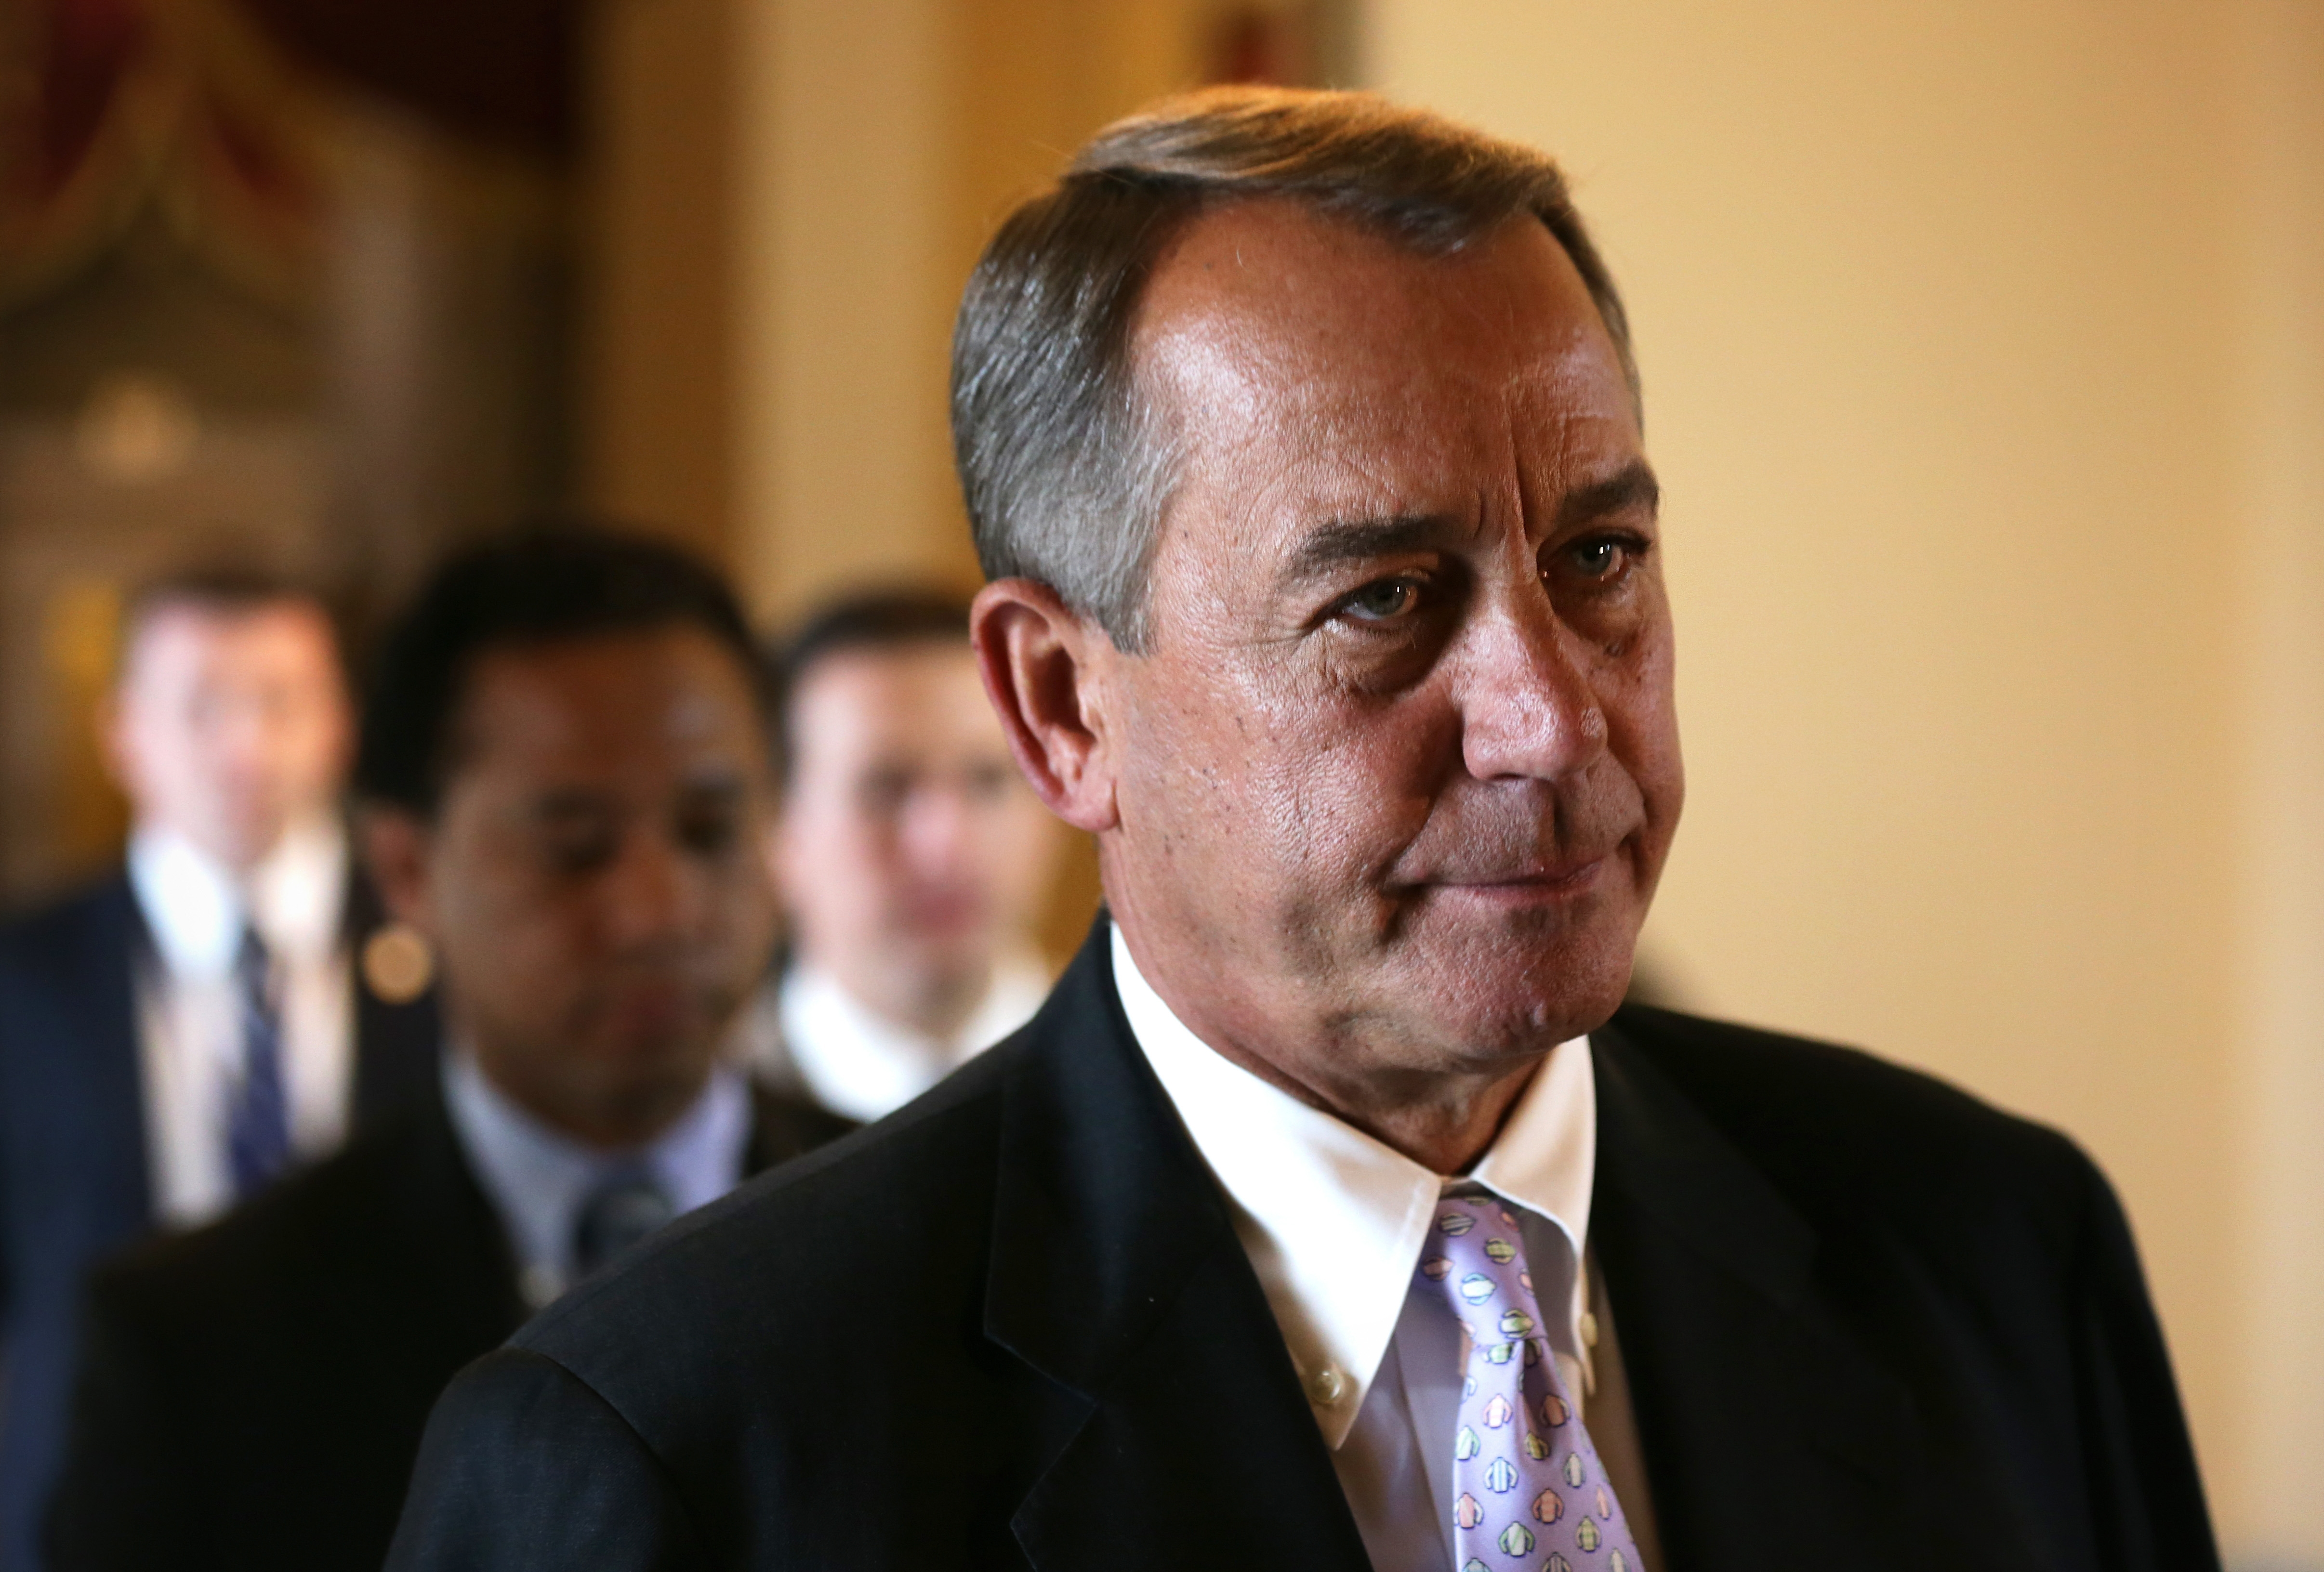 Speaker John Boehner heads to the House chamber for a procedural vote Saturday on a bill to link health care and the budget.